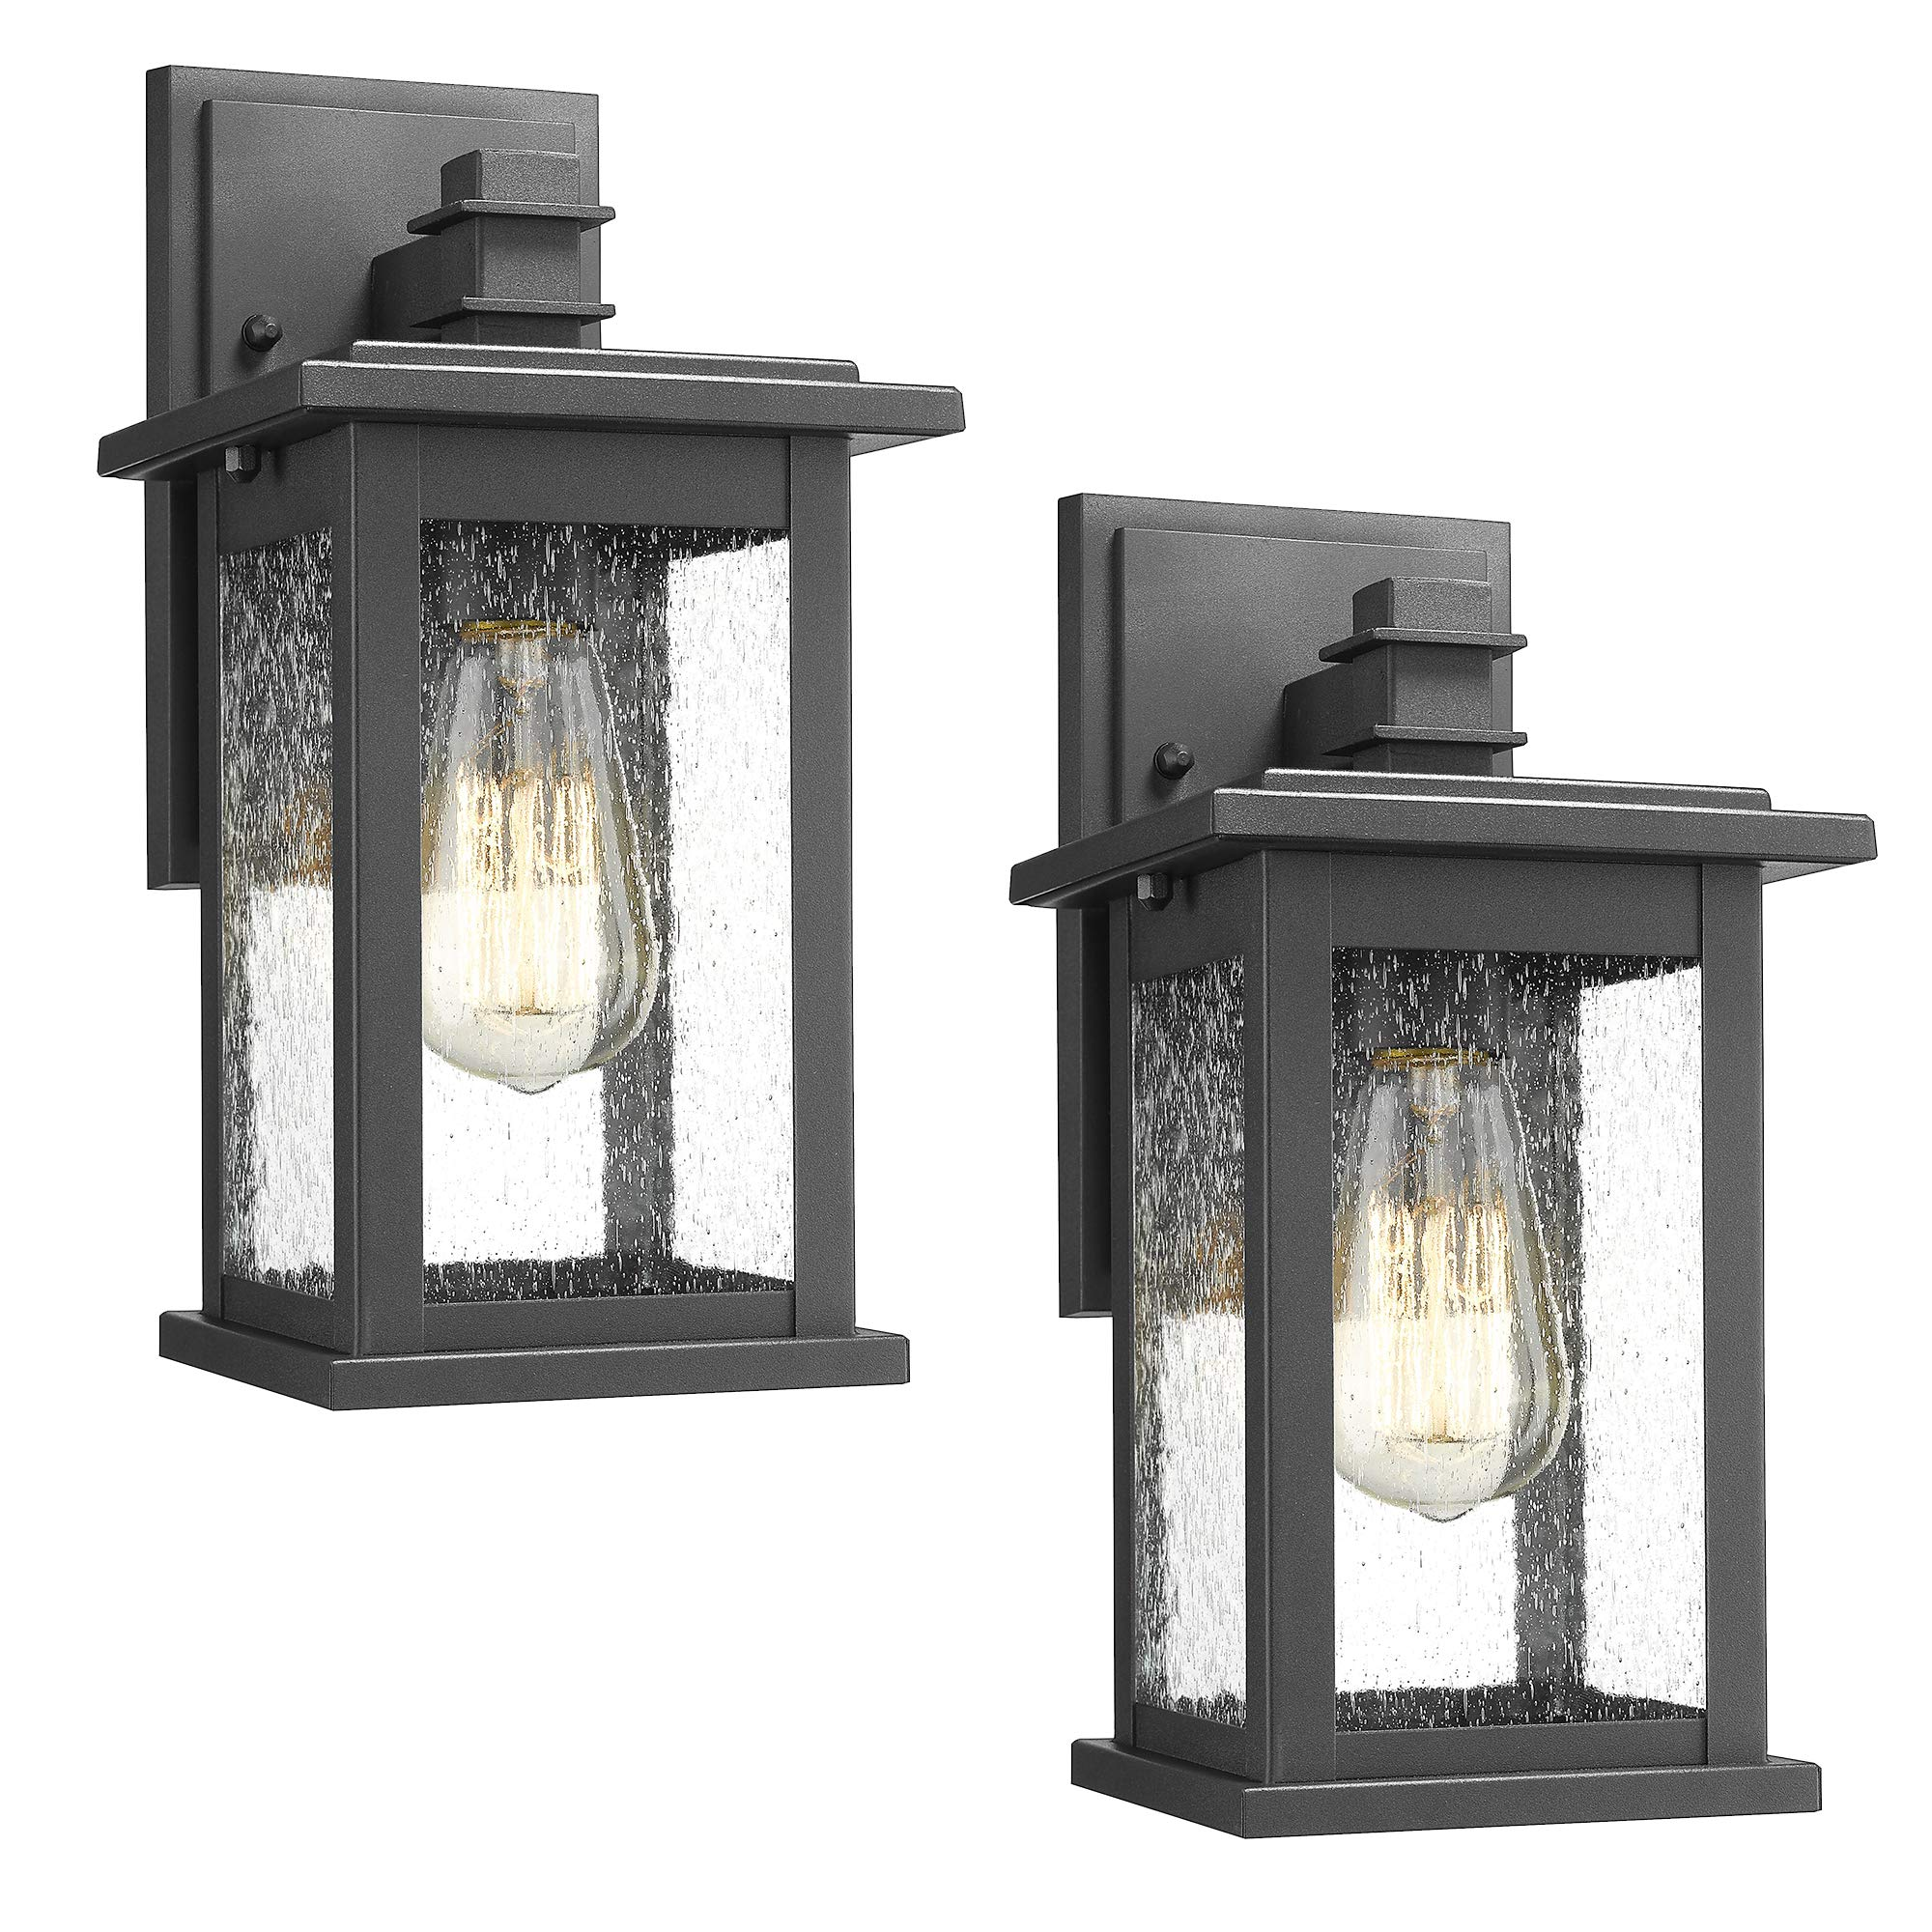 Emliviar Outdoor Wall Mount Lights 2 Pack, 1-Light Exterior Sconces Lantern in Black Finish with Clear Seeded Glass, OS-1803EW1-2PK by EMLIVIAR